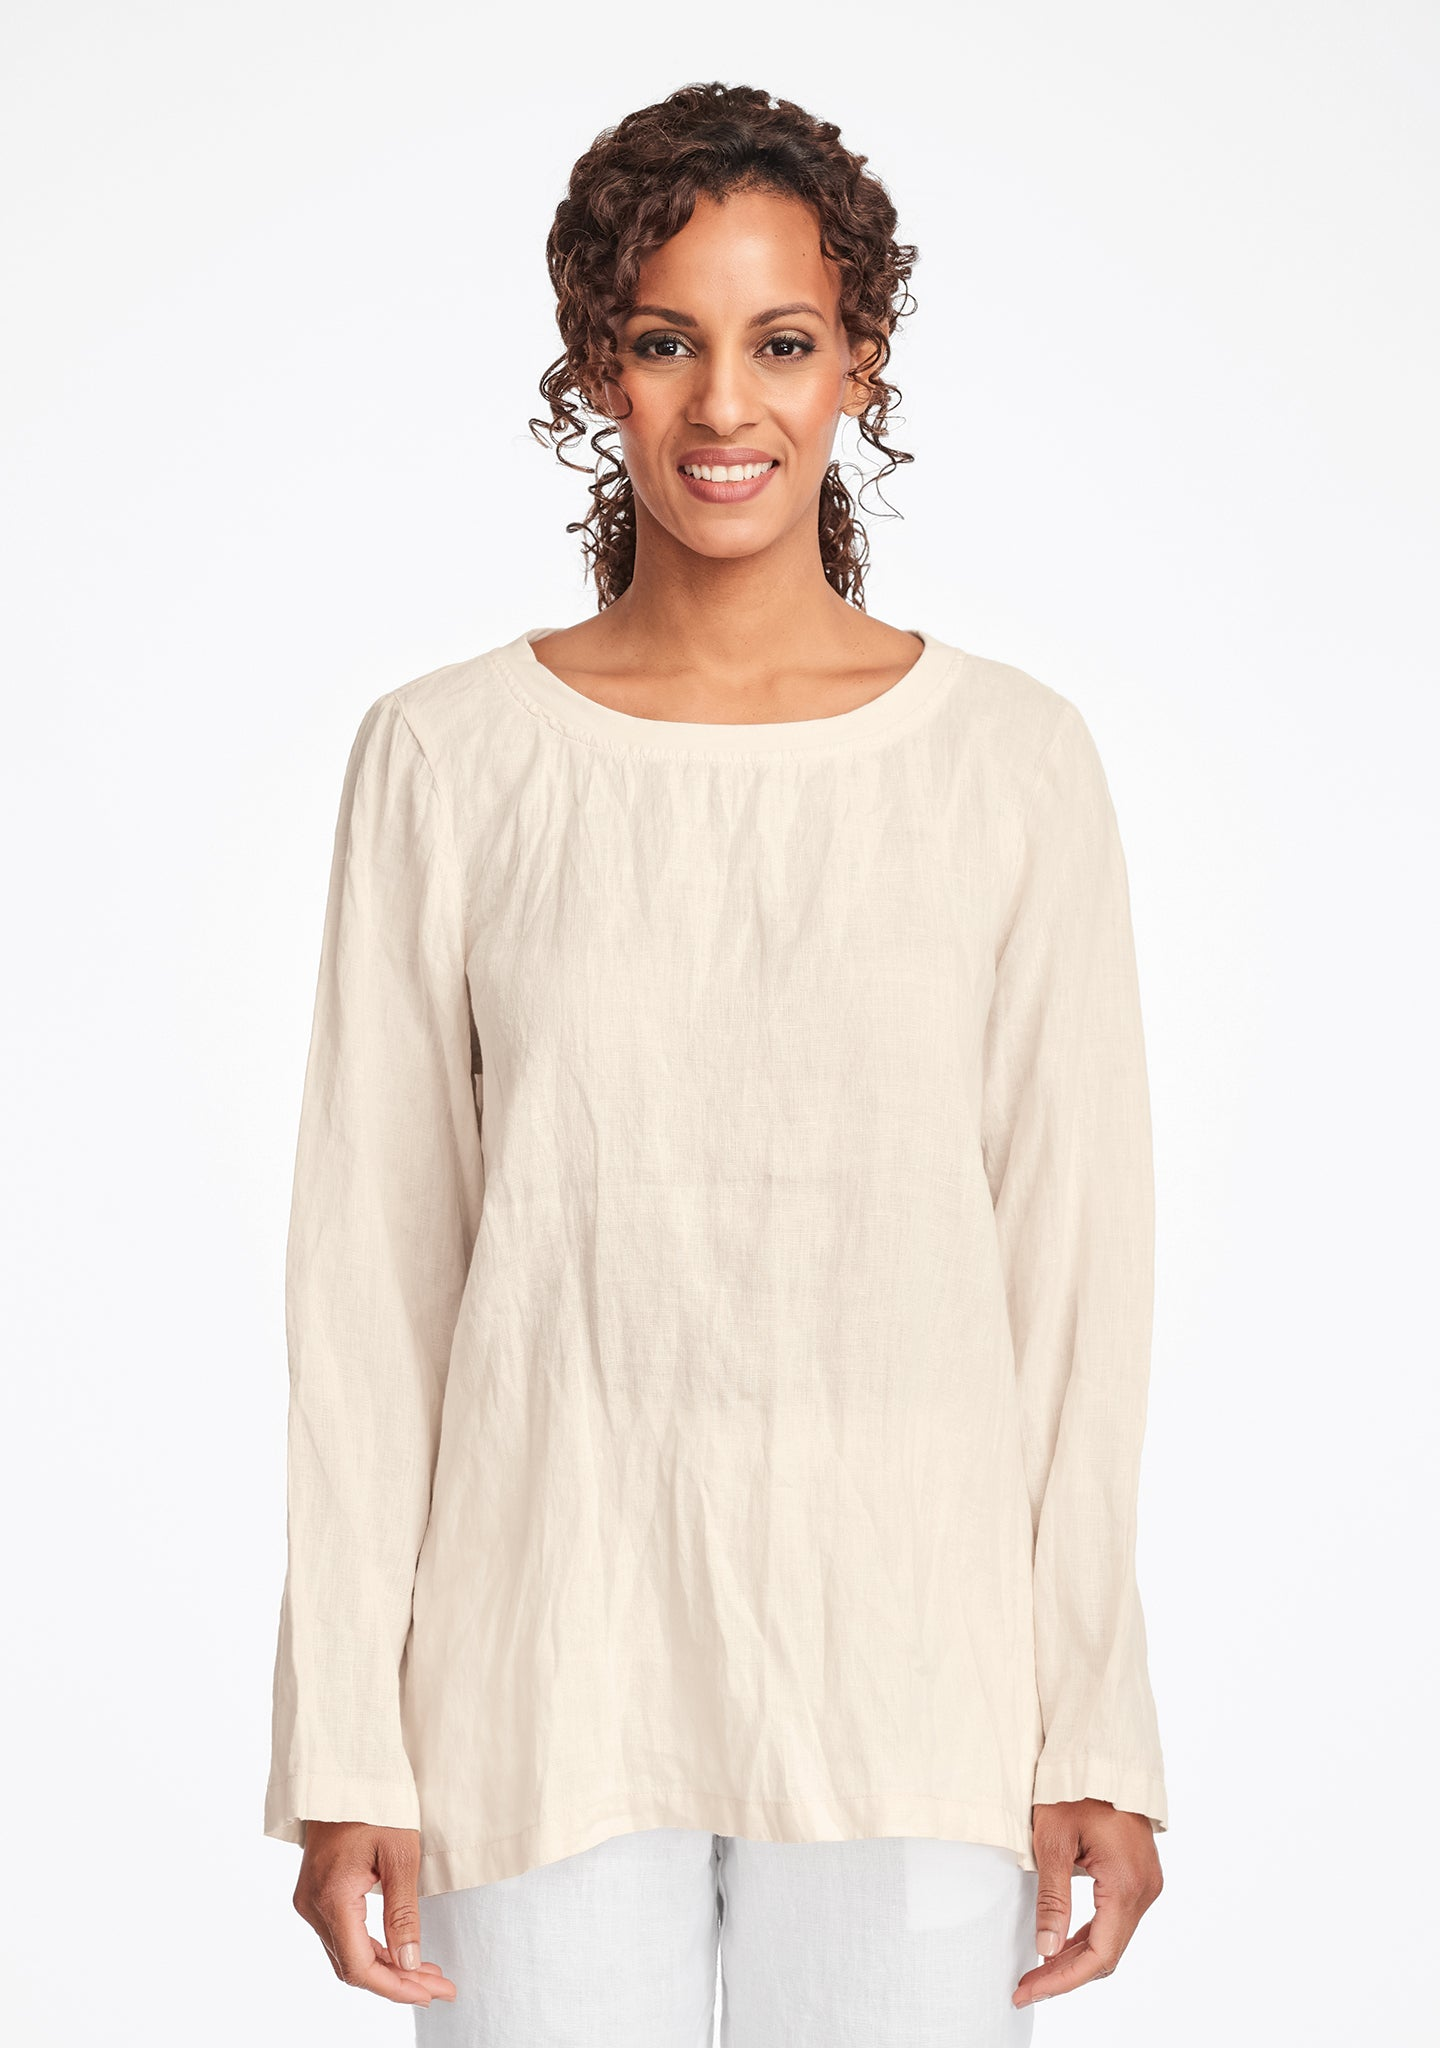 basecamp pullover long sleeve linen shirt white